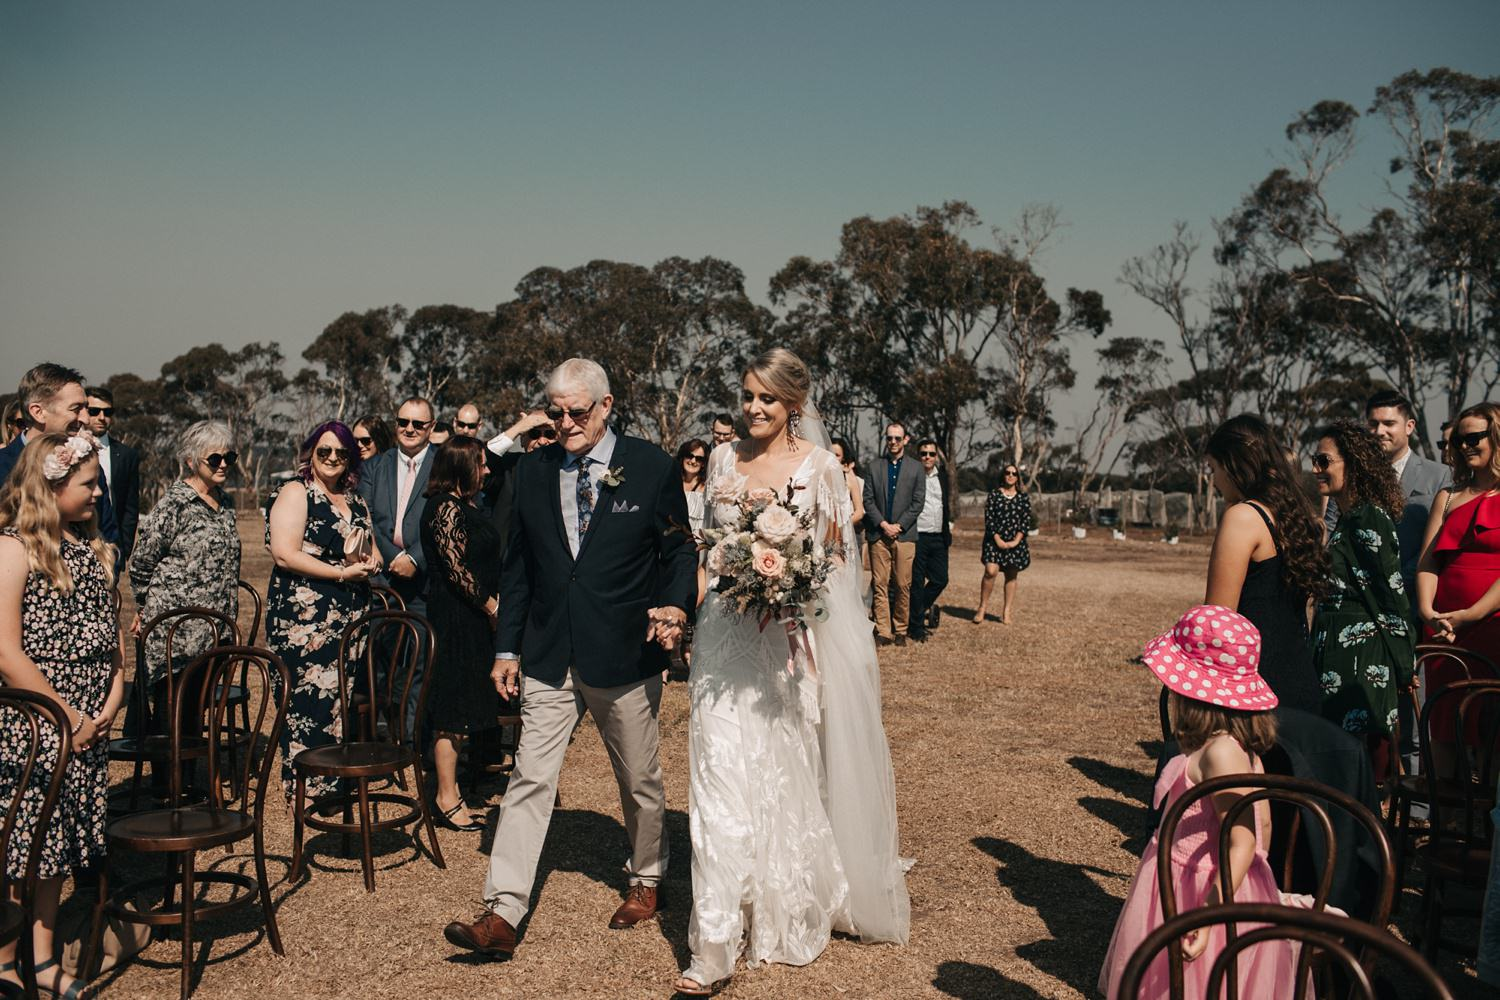 relaxed-wedding-photographer-melbourne-bellarine-peninsula-baie-winery_0031.jpg